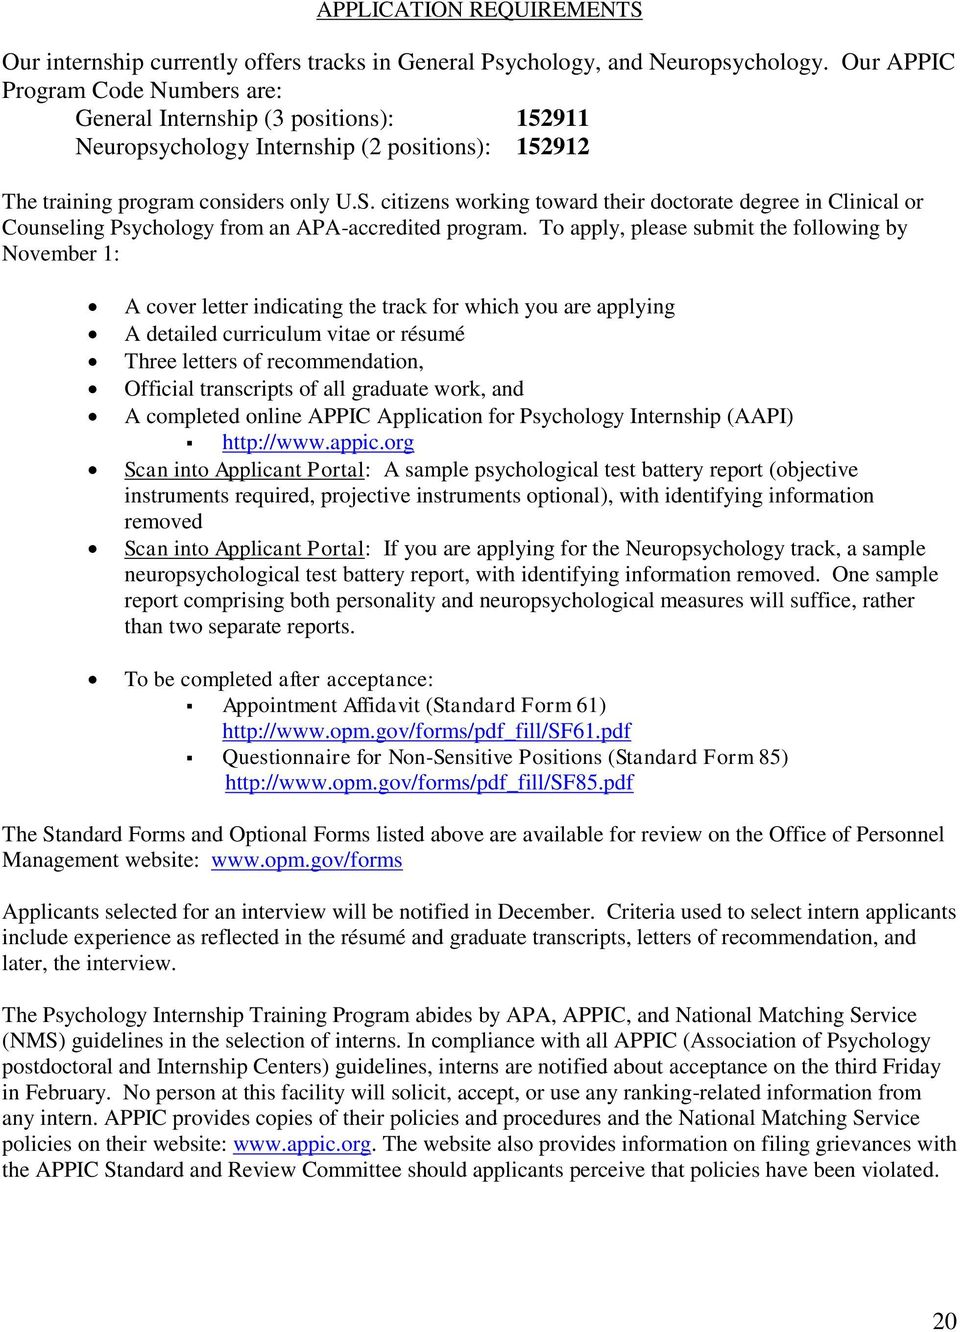 Apa Accredited Internship Program In Professional Psychology Pdf